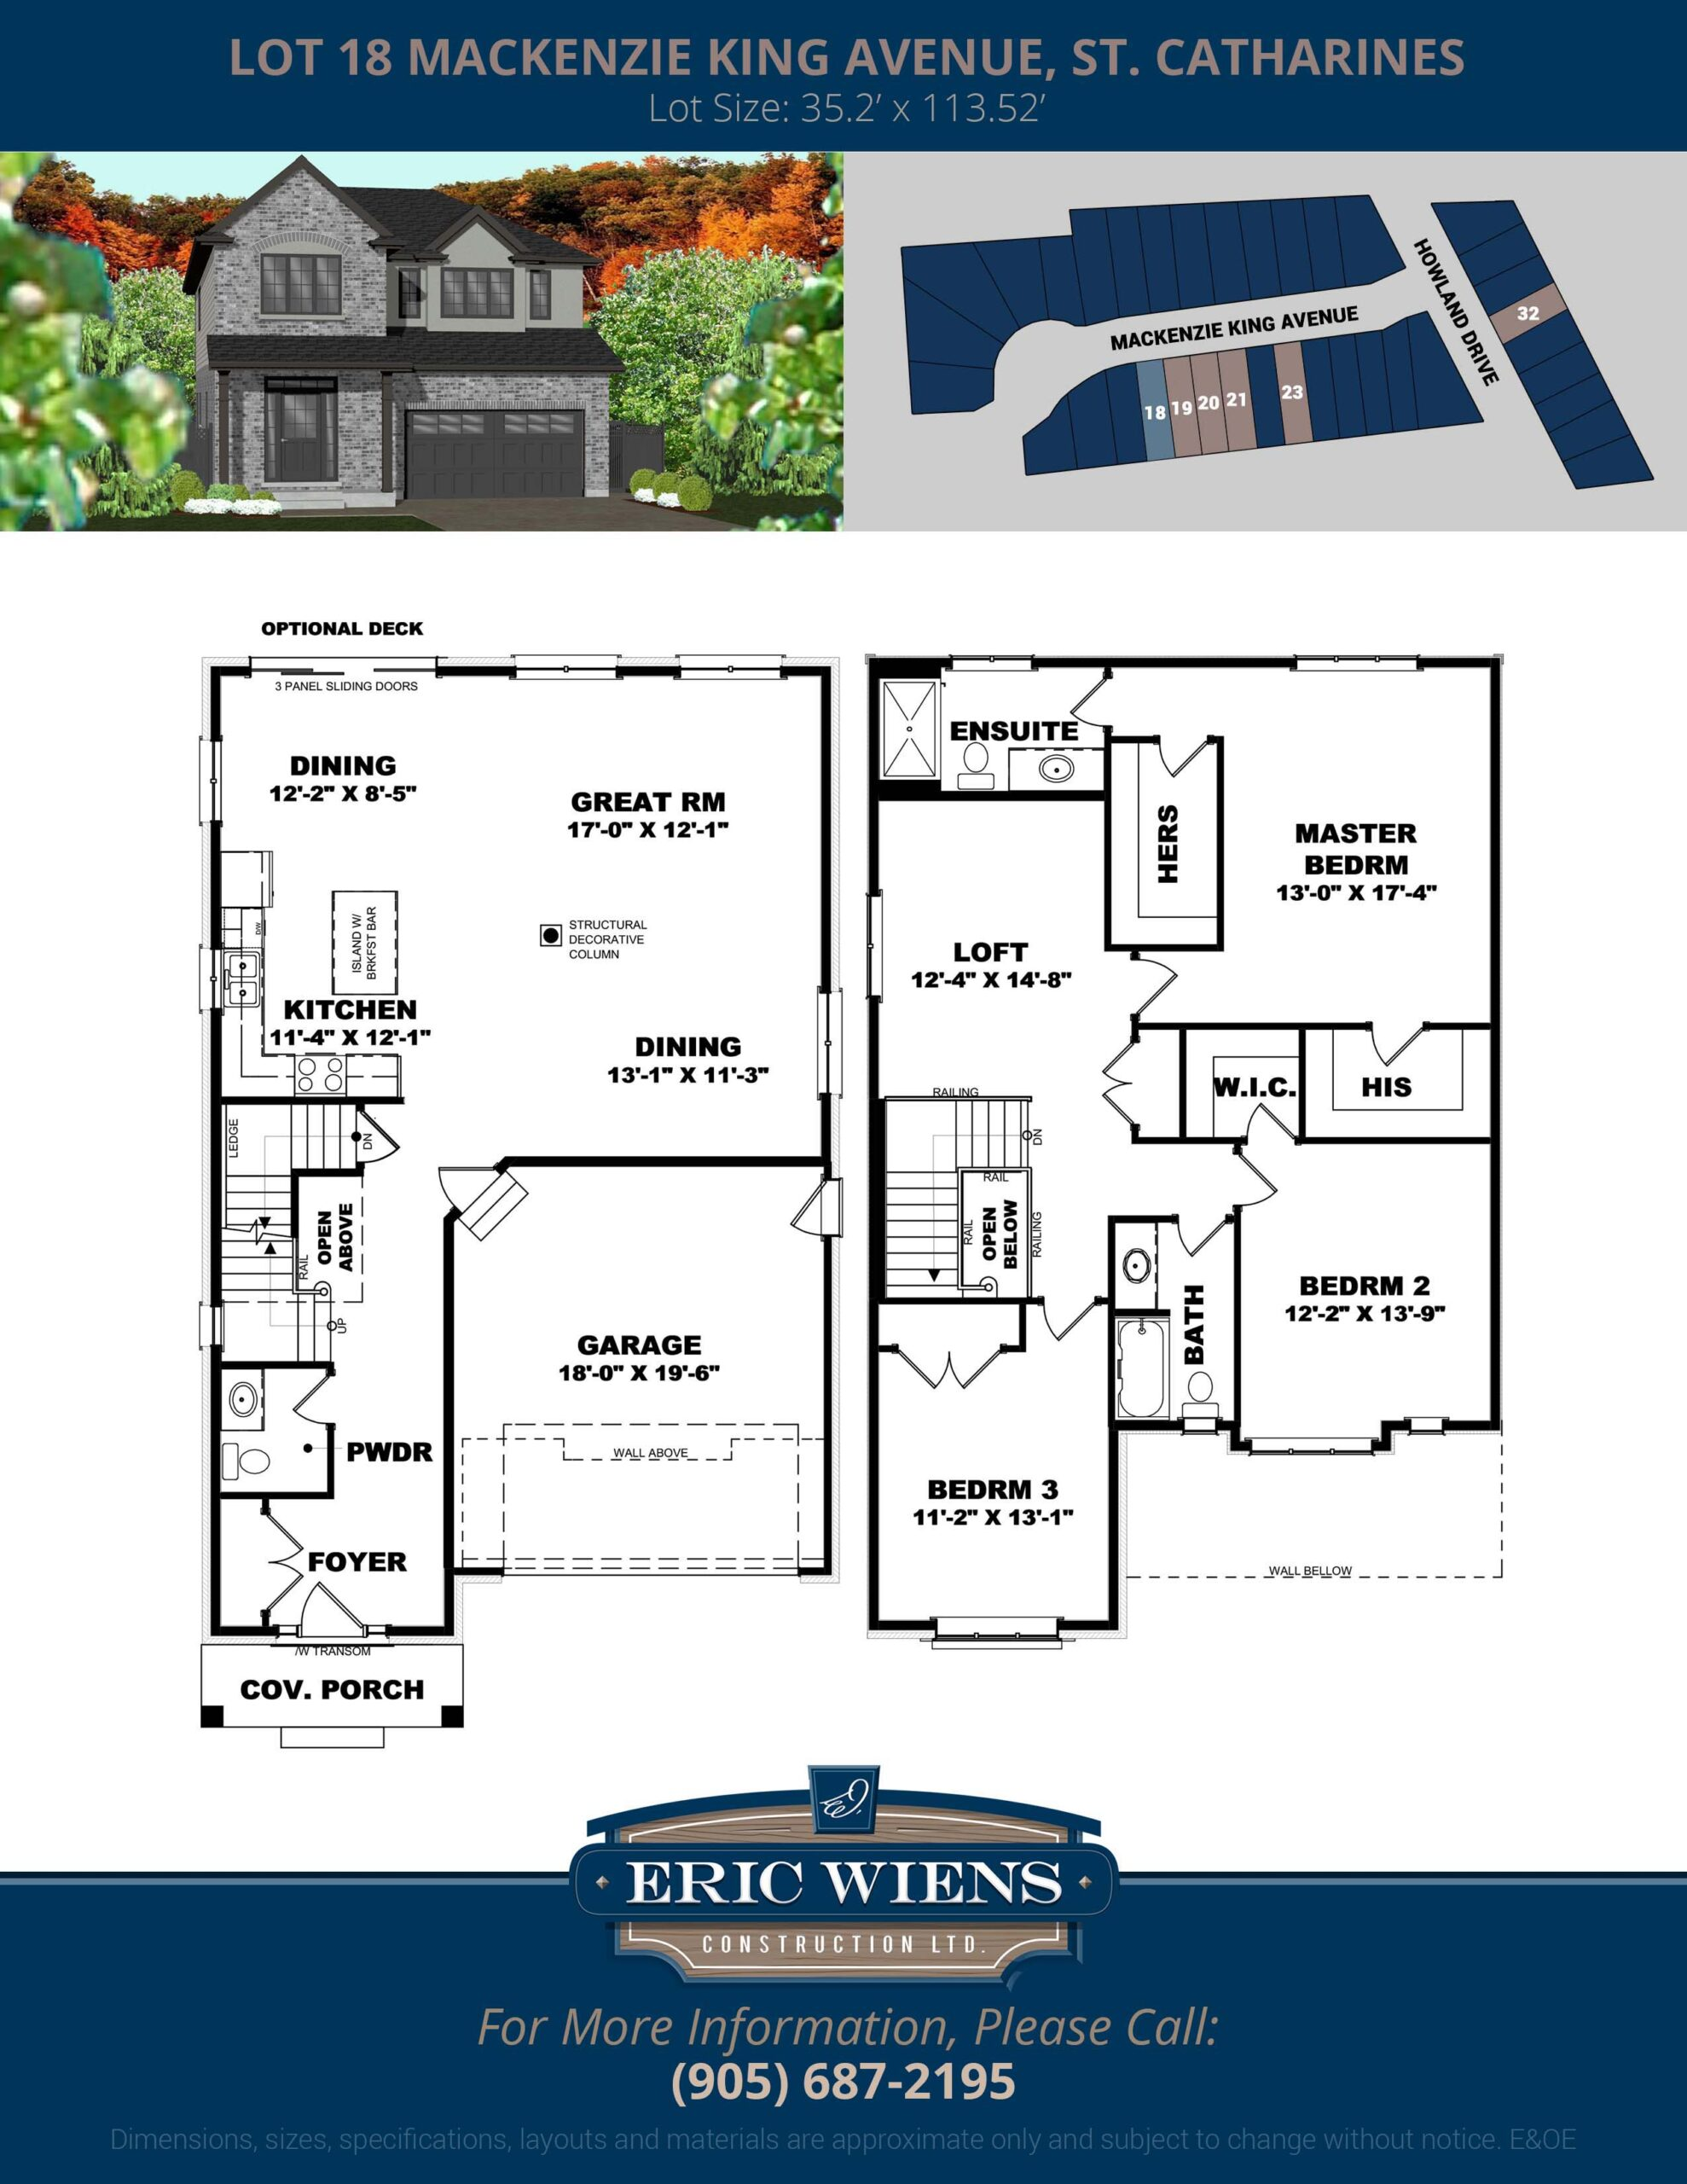 Lot 18 Mackenzie King Avenue Floor Plan